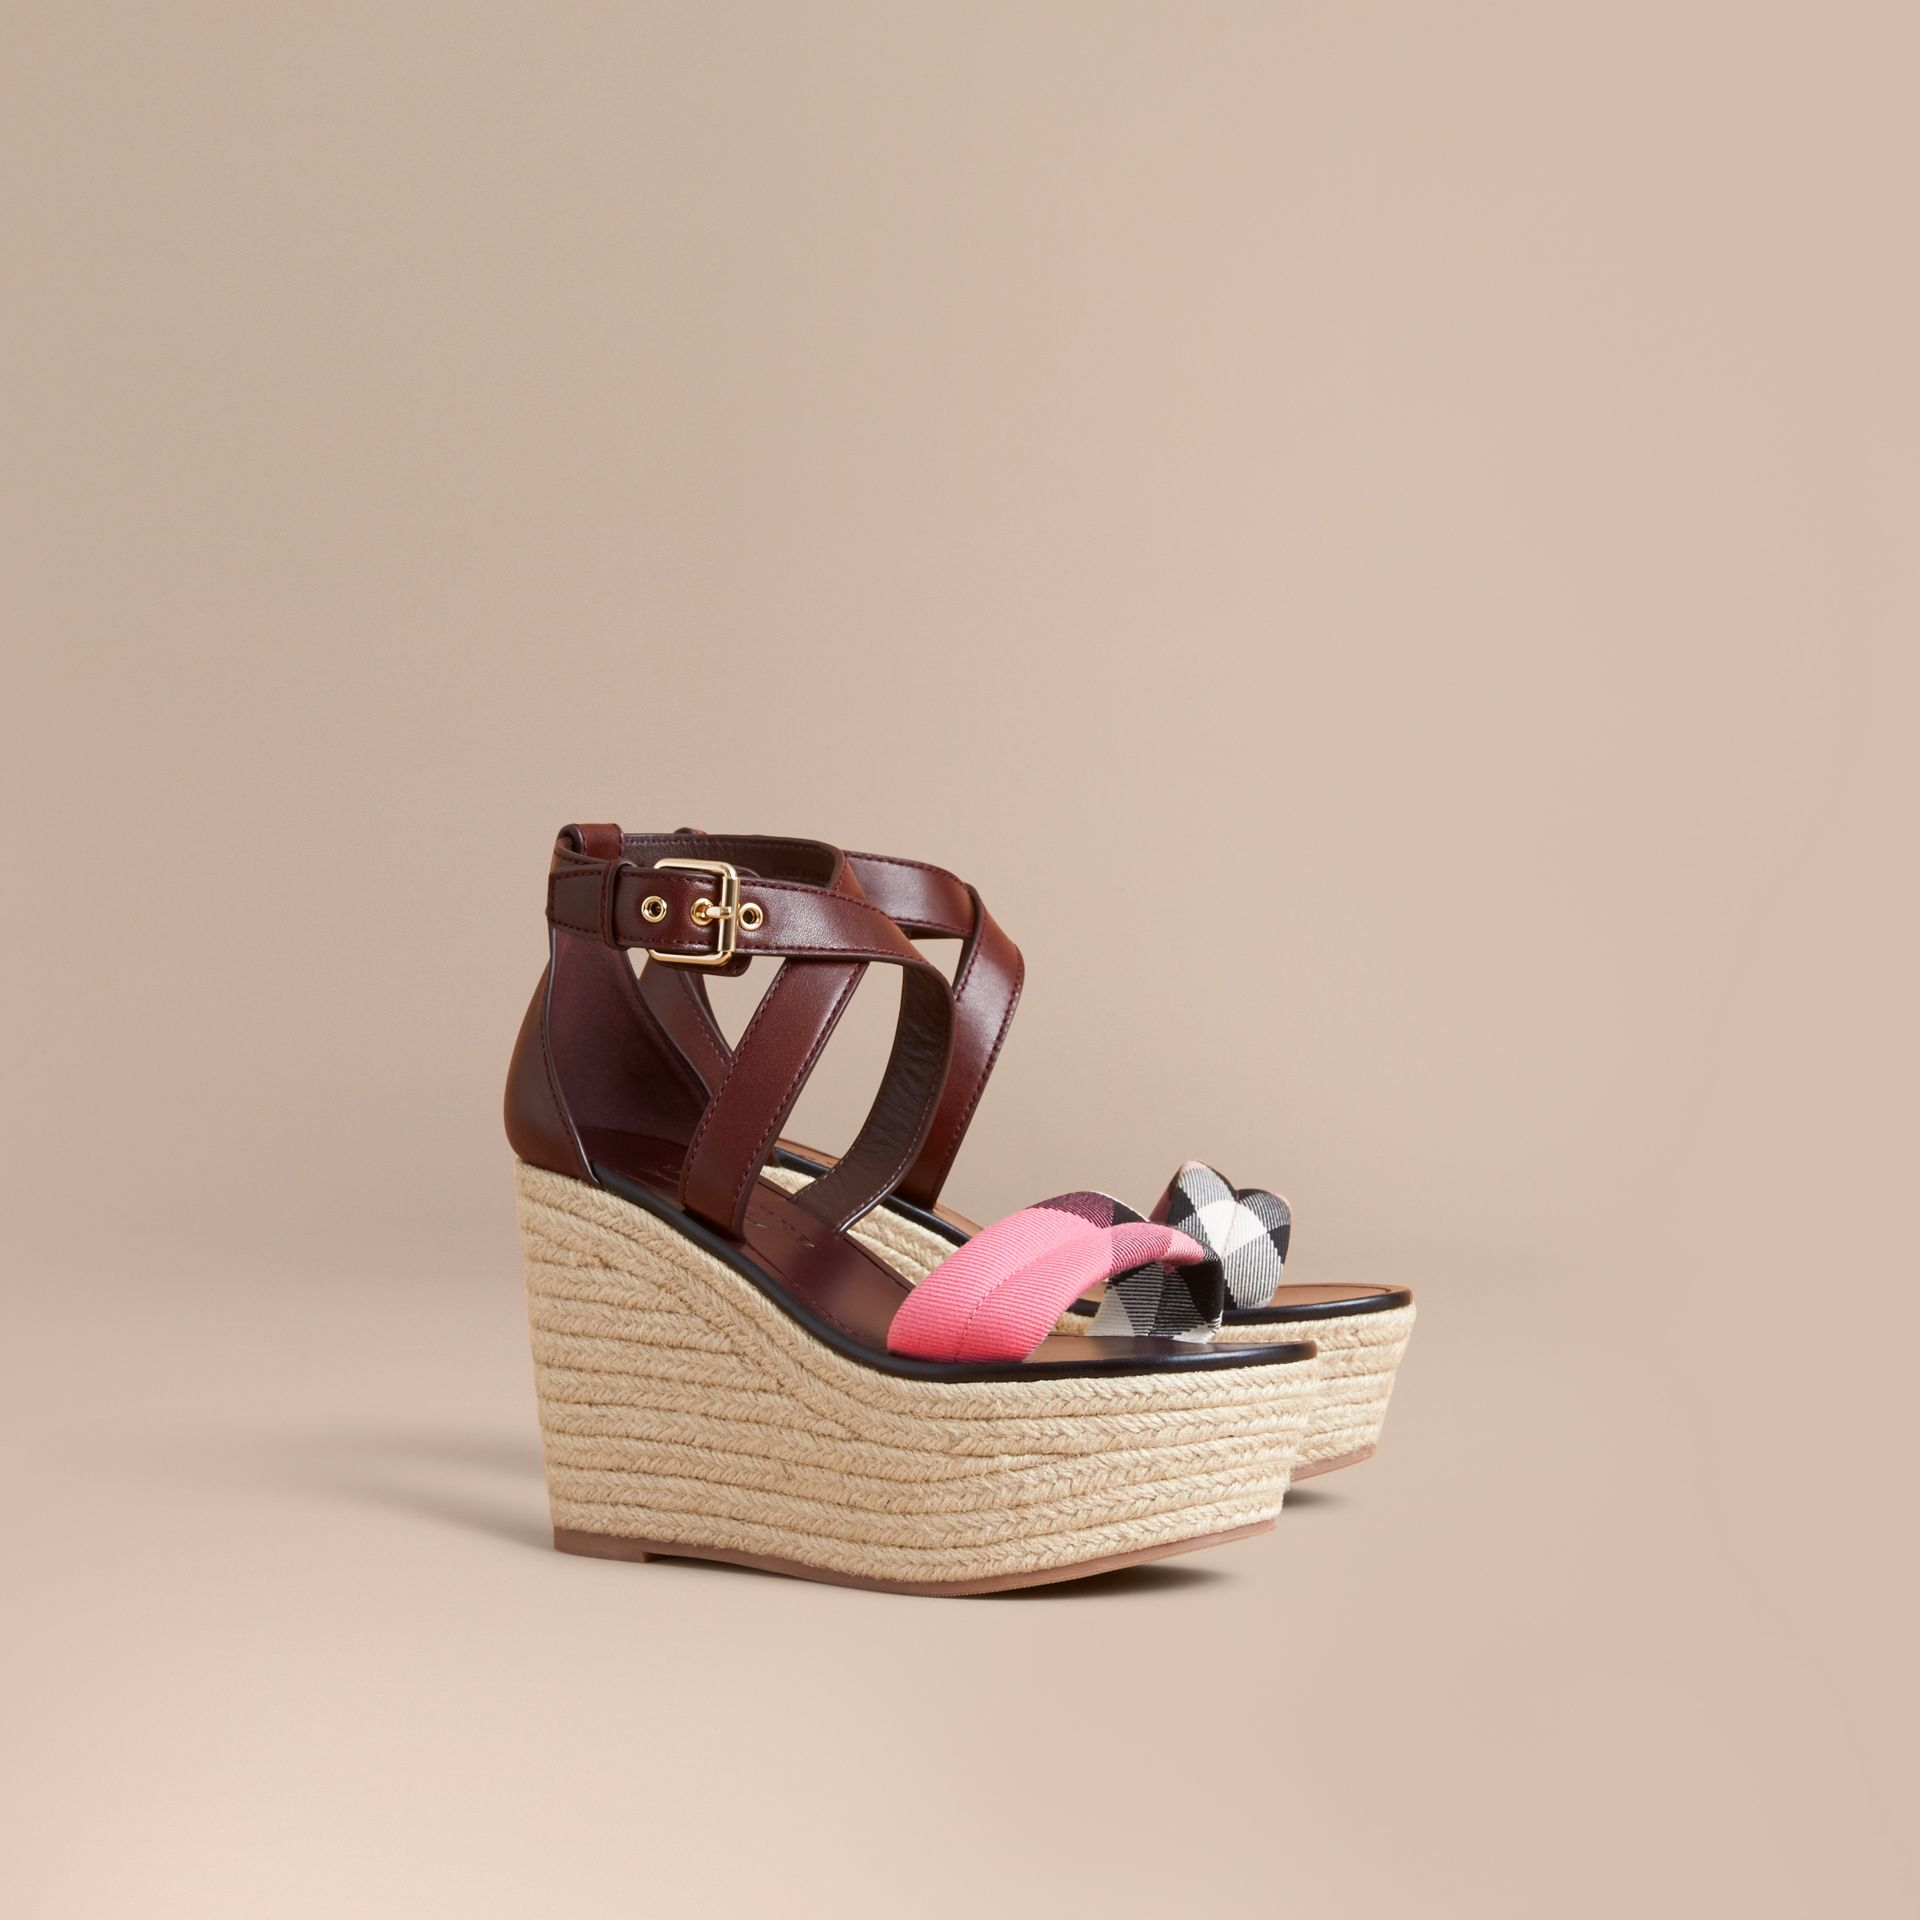 Leather and House Check Platform Espadrille Wedge Sandals in Cerise Purple - Women | Burberry - gallery image 1